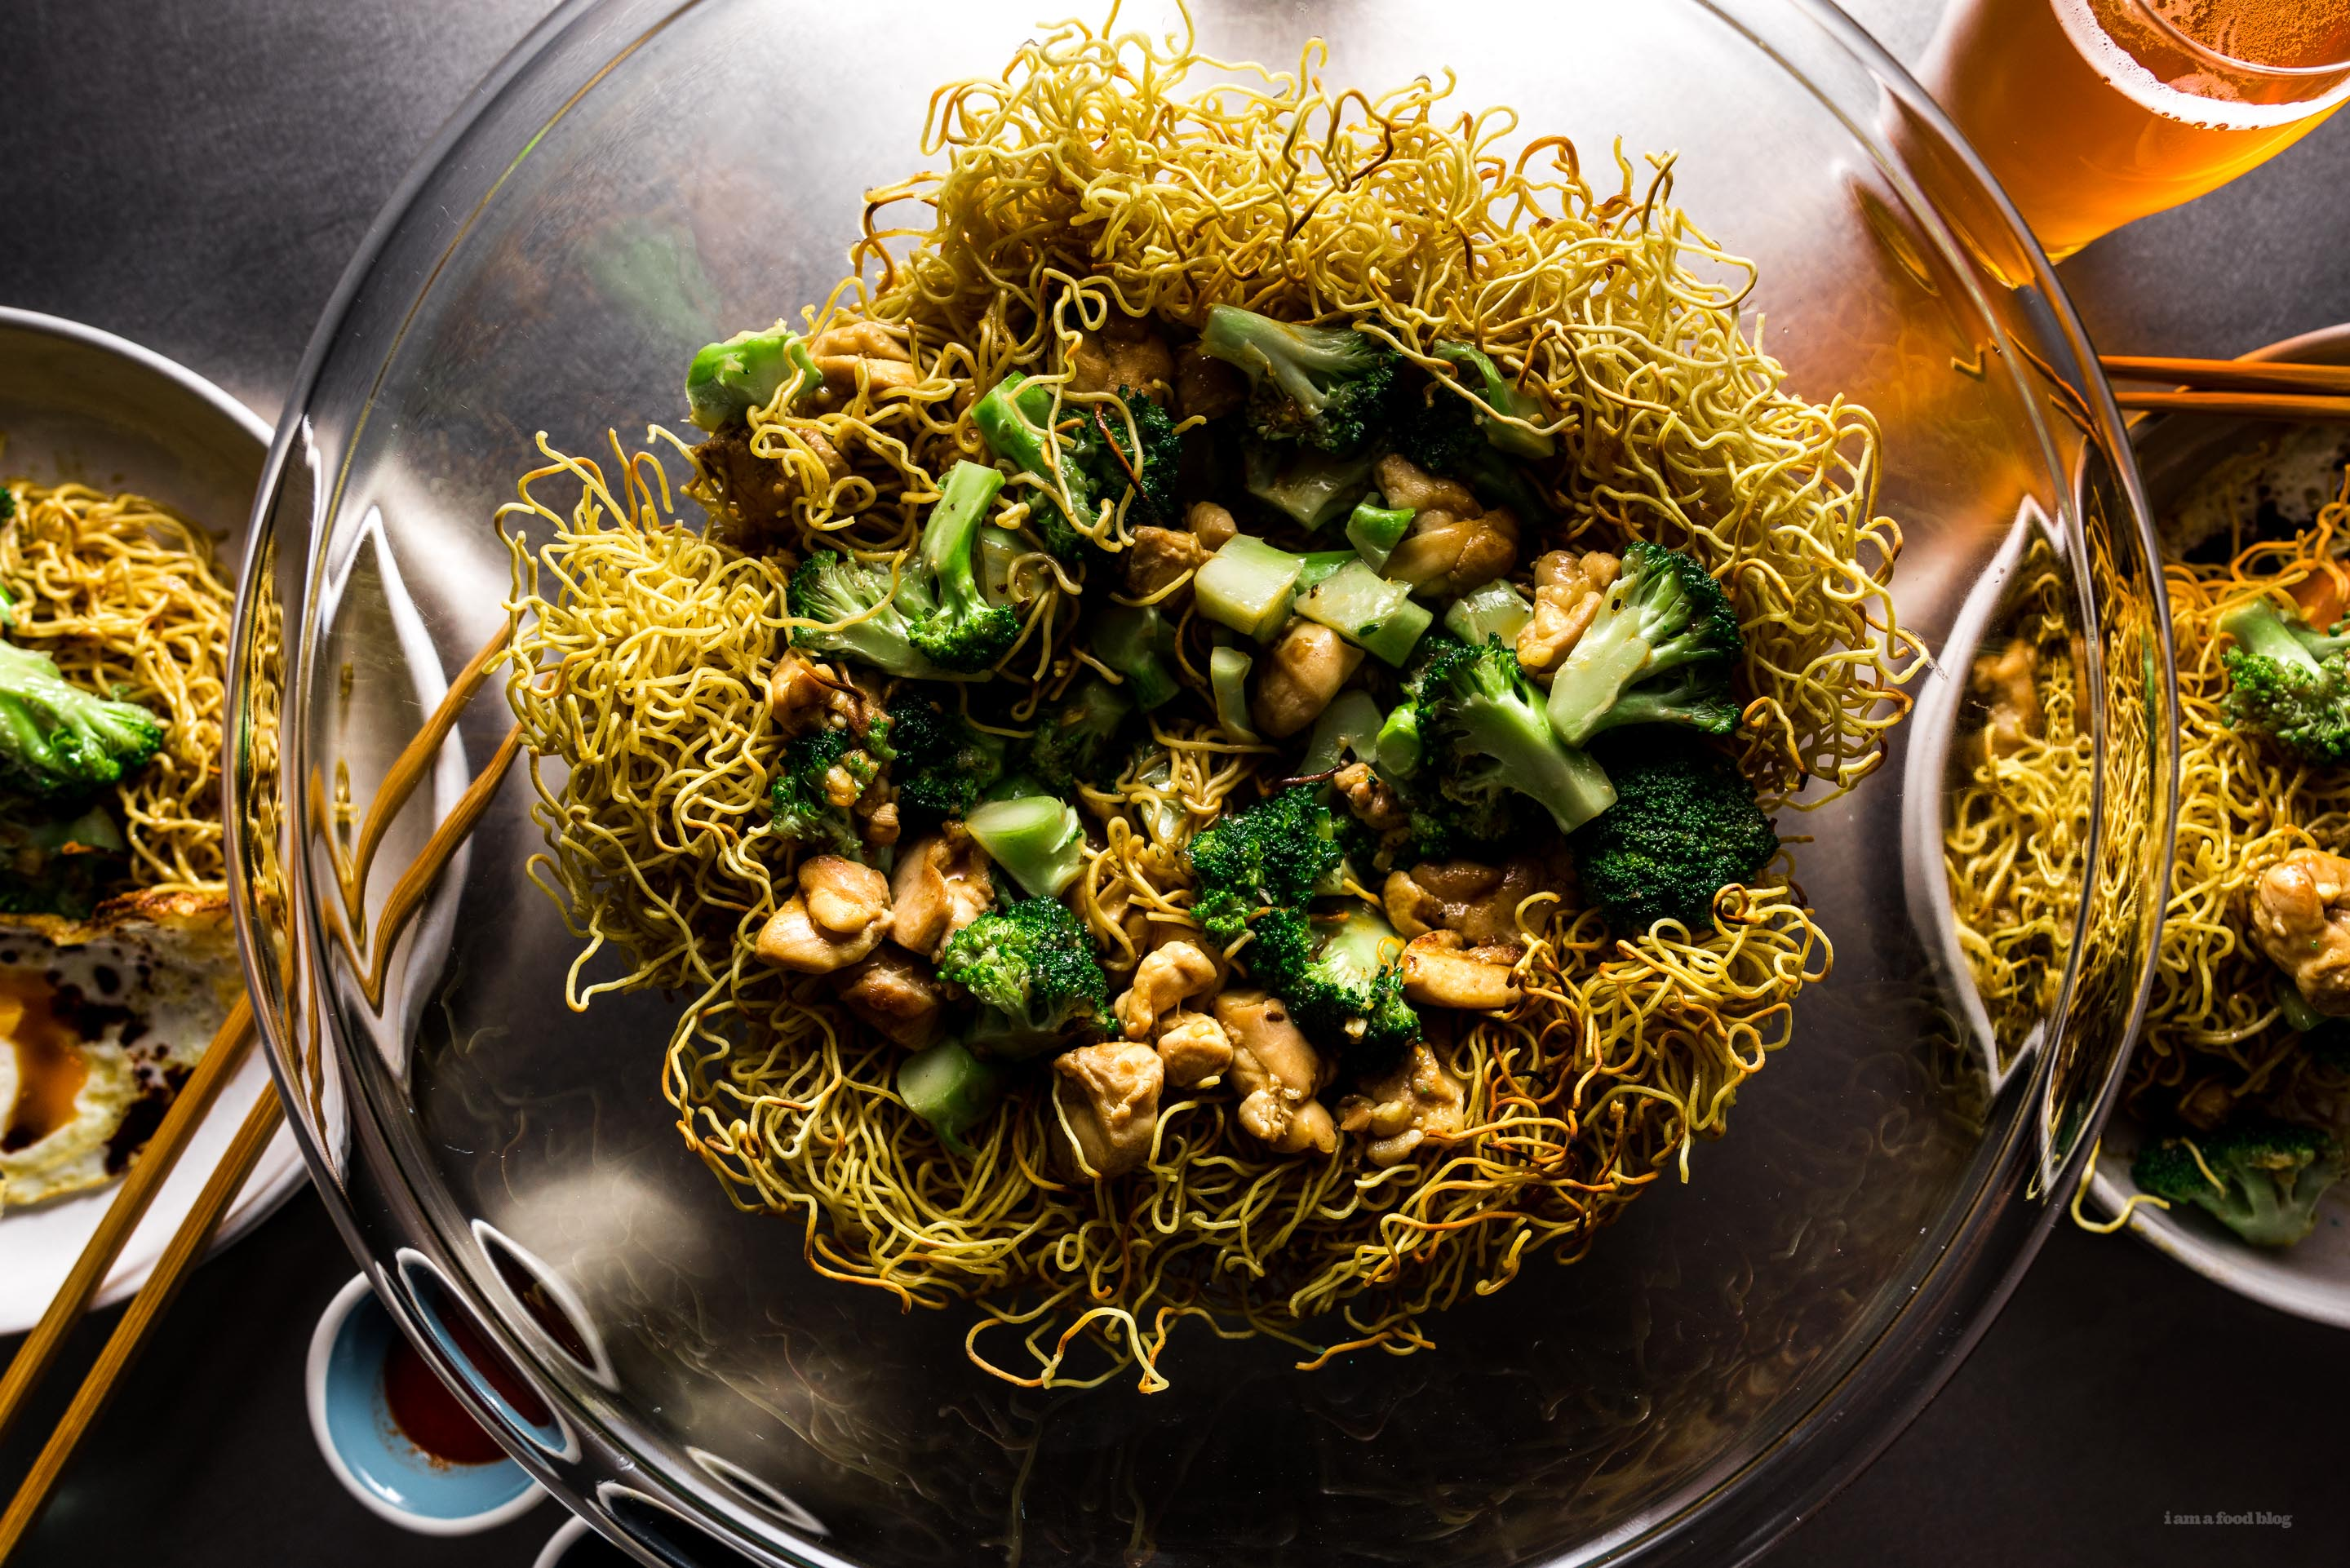 Take Out At Home Chicken And Broccoli Chow Mein Recipe I Am A Food Blog I Am A Food Blog